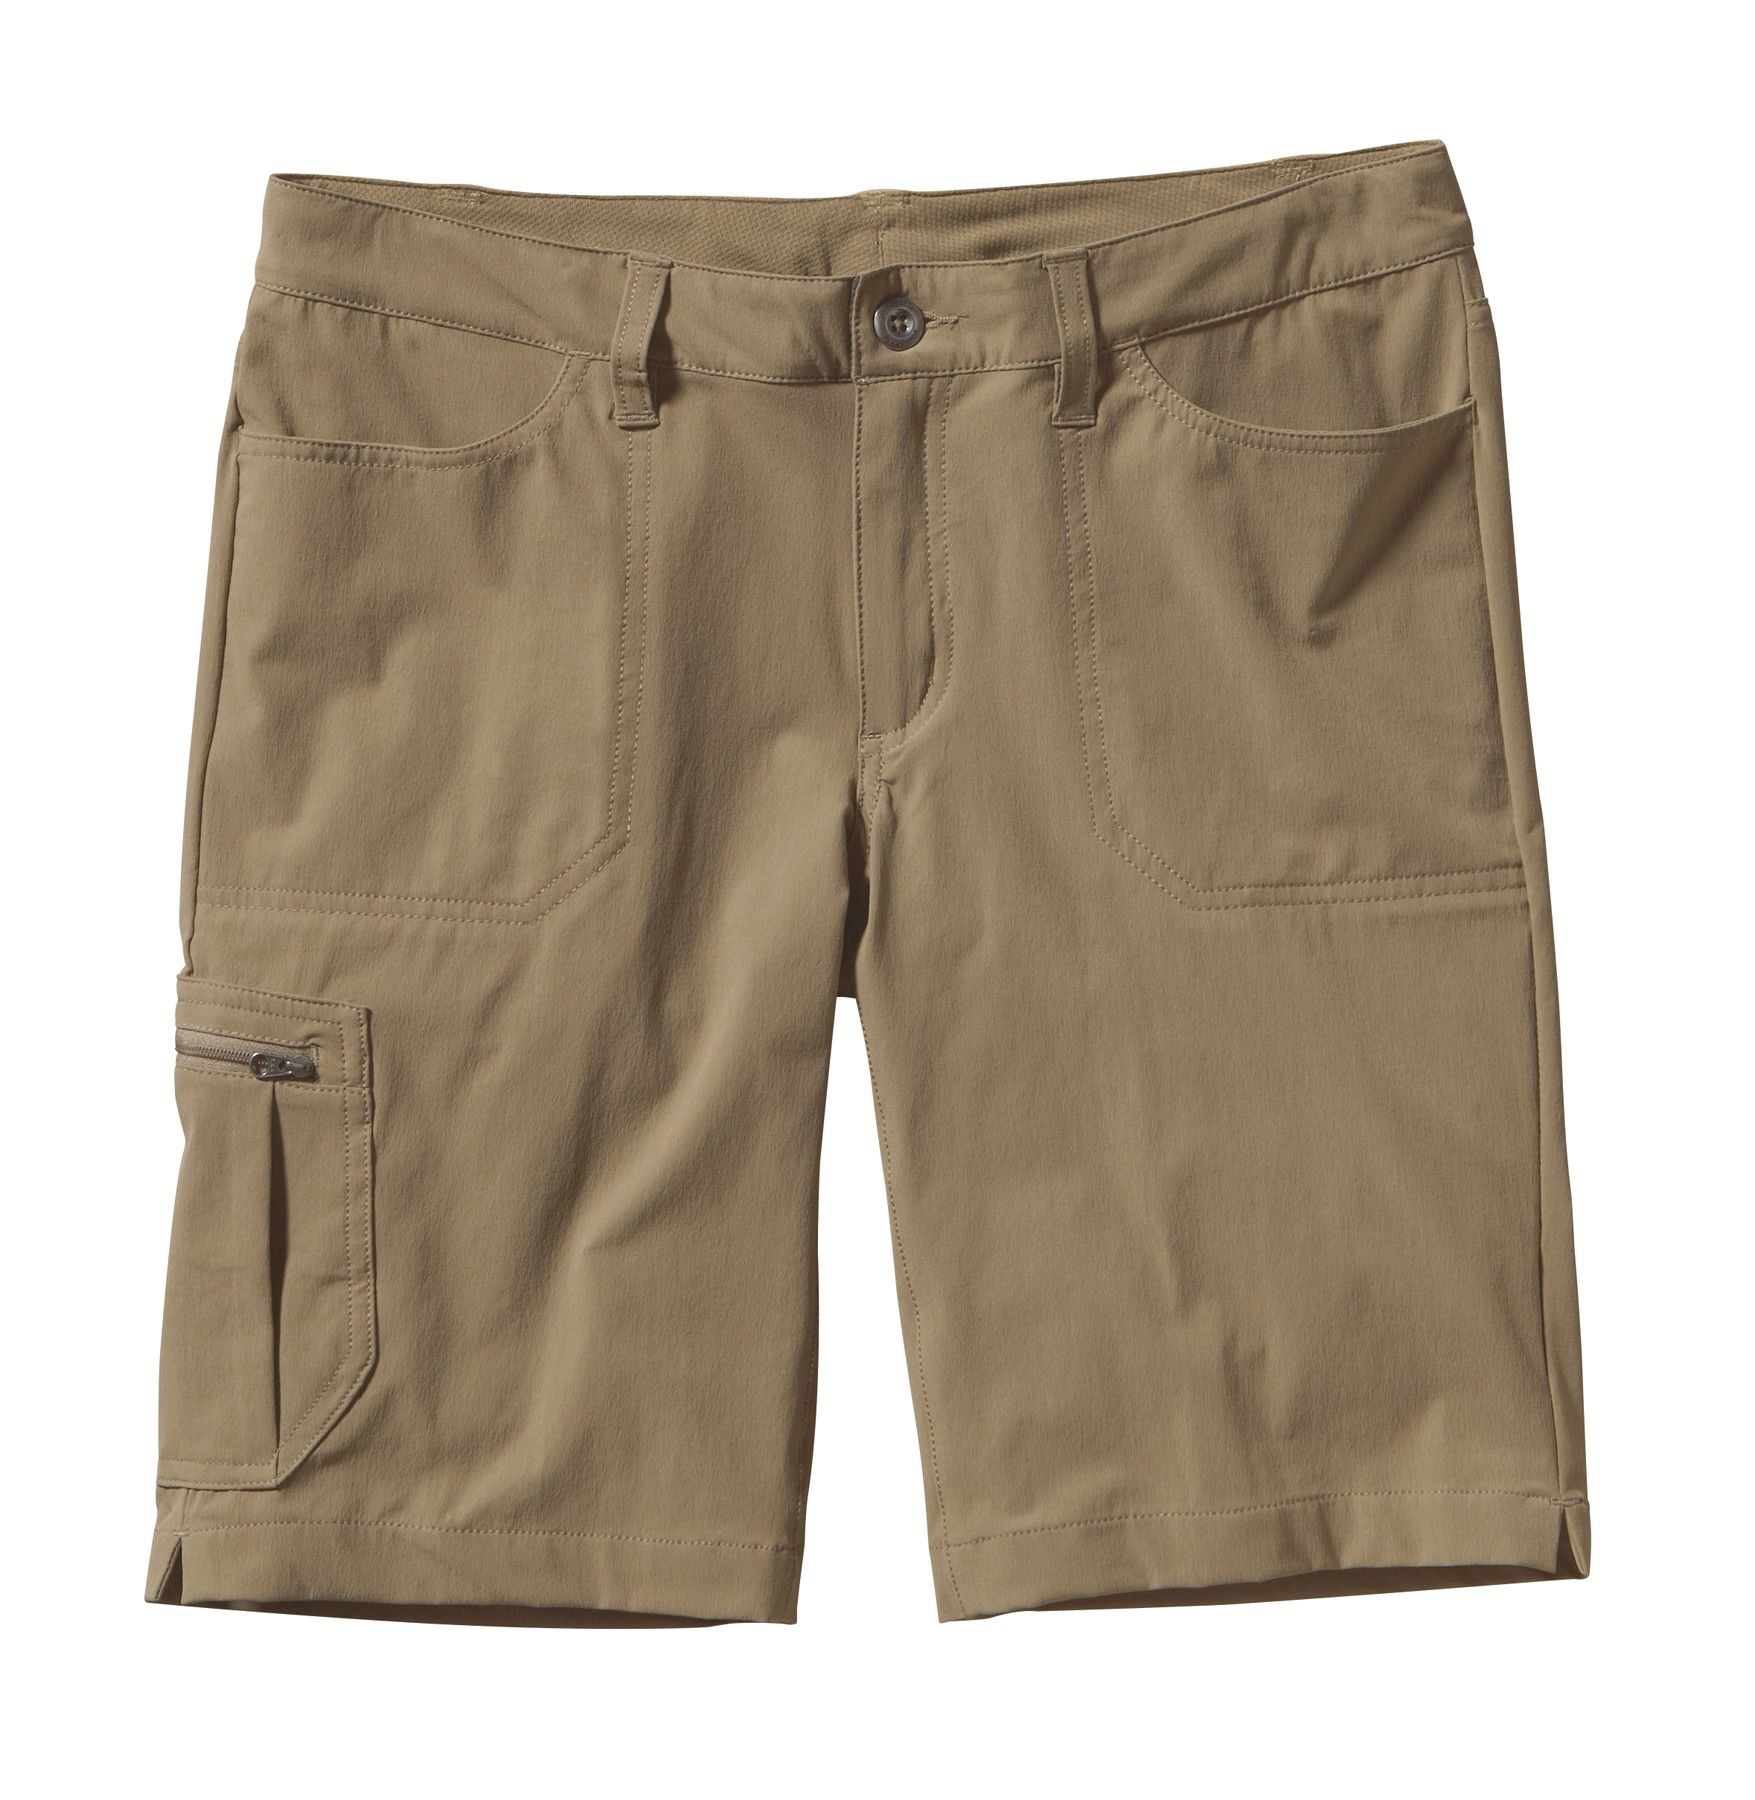 Patagonia Tribune Shorts Beige, Female Shorts, 4